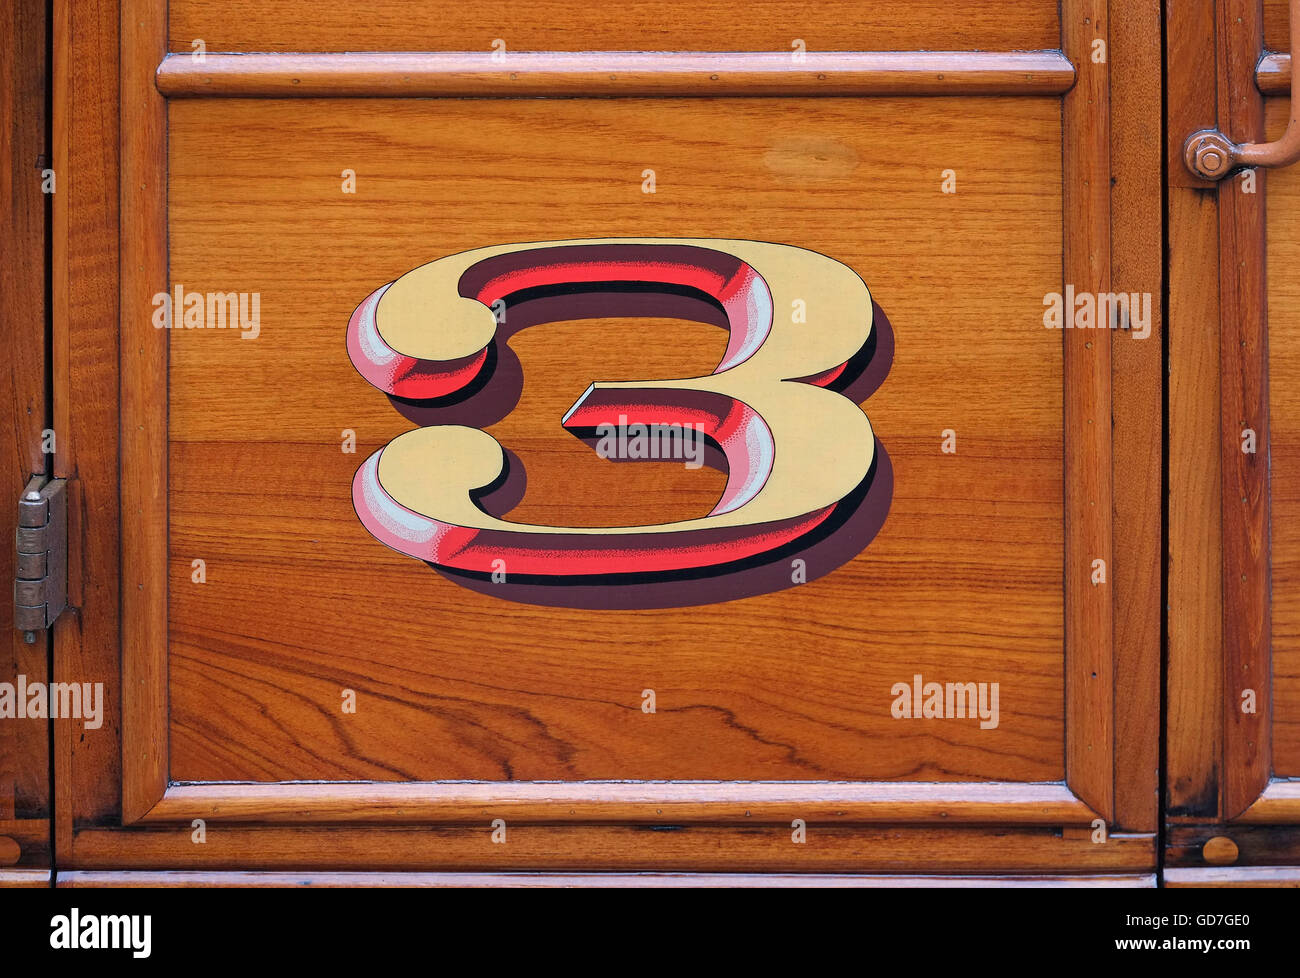 number 3 hand painted on wooden railway carriage - Stock Image